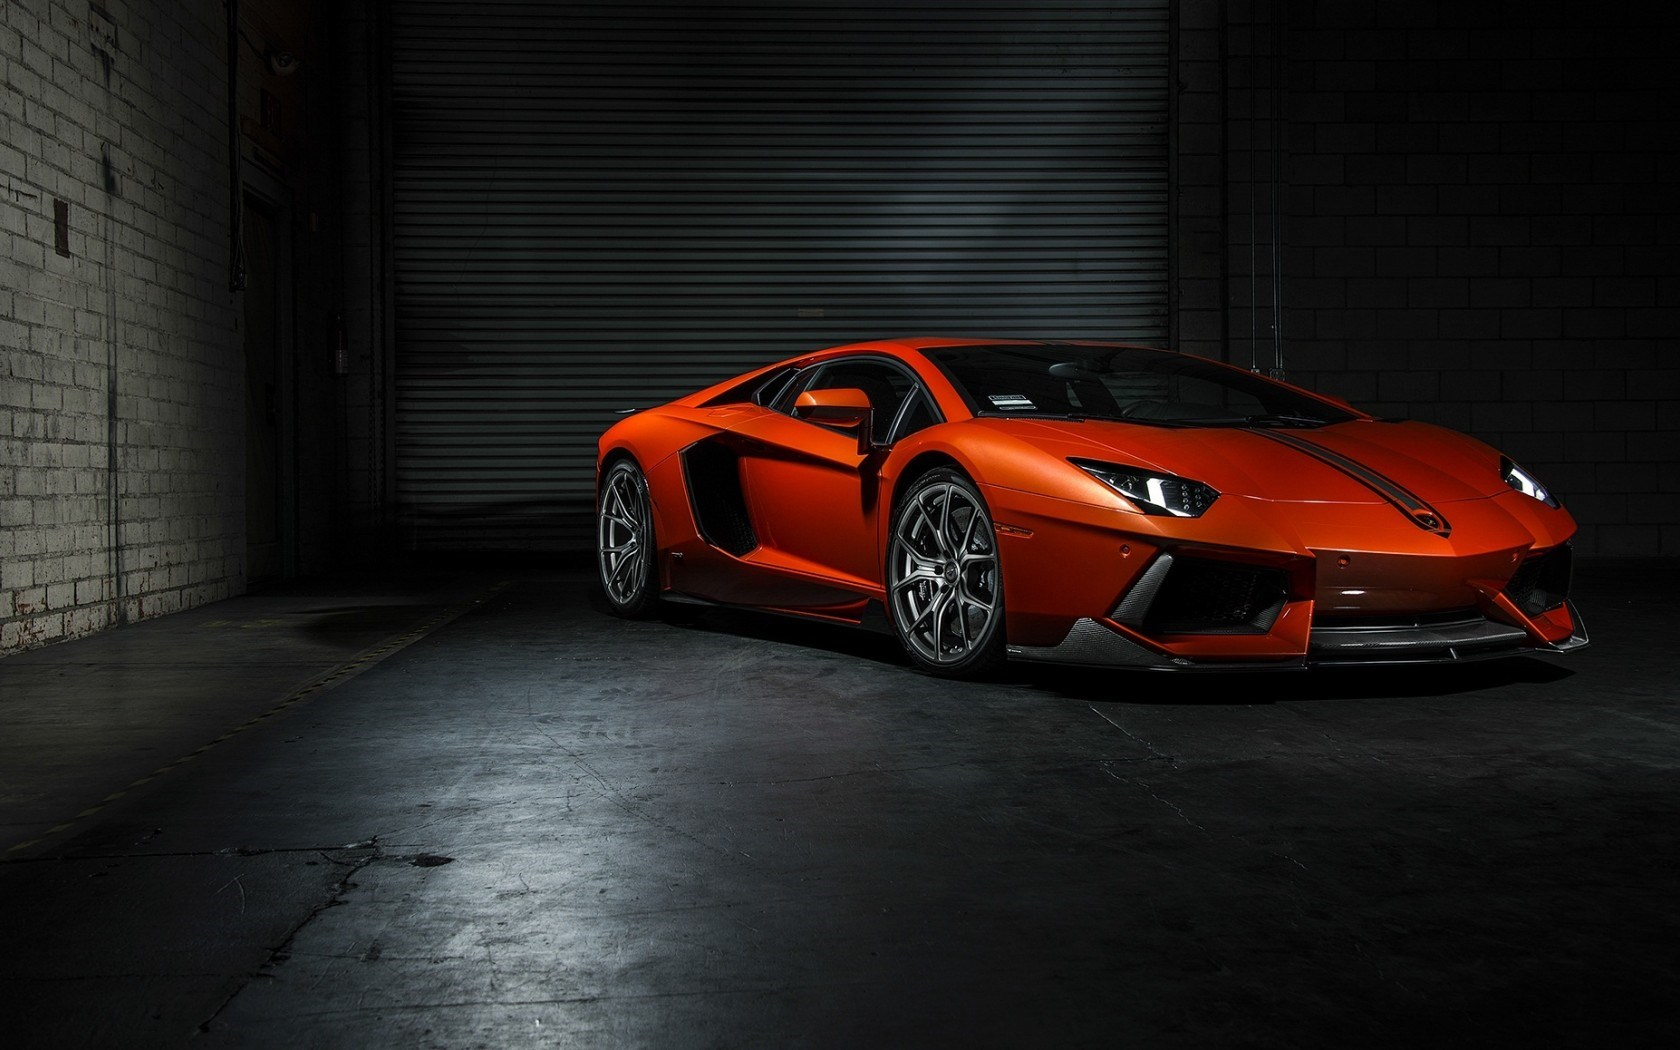 Lamborghini Aventador LP 700-4 Vorsteiner Tuning Car Orange Front Right